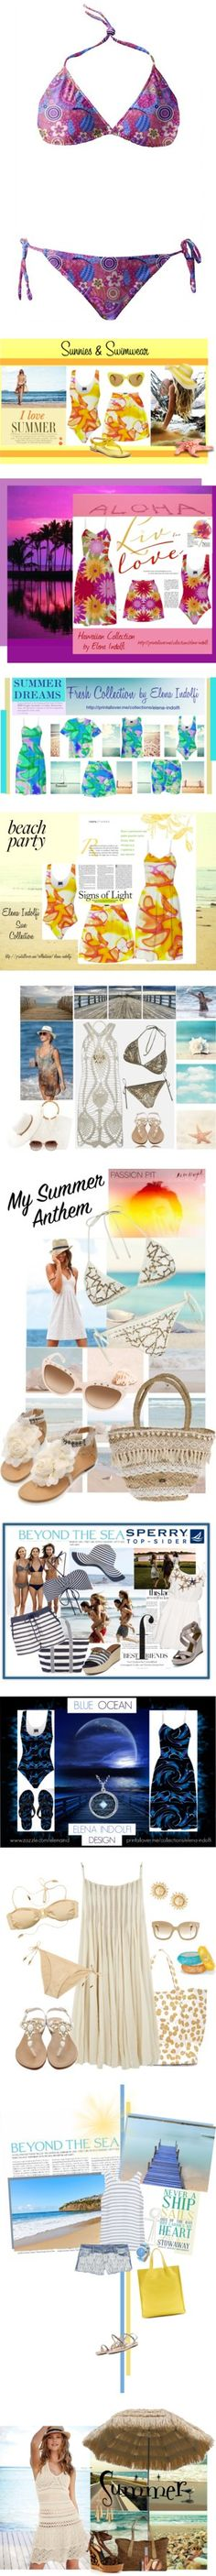 """On The Beach"" by elena-indolfi on Polyvore"